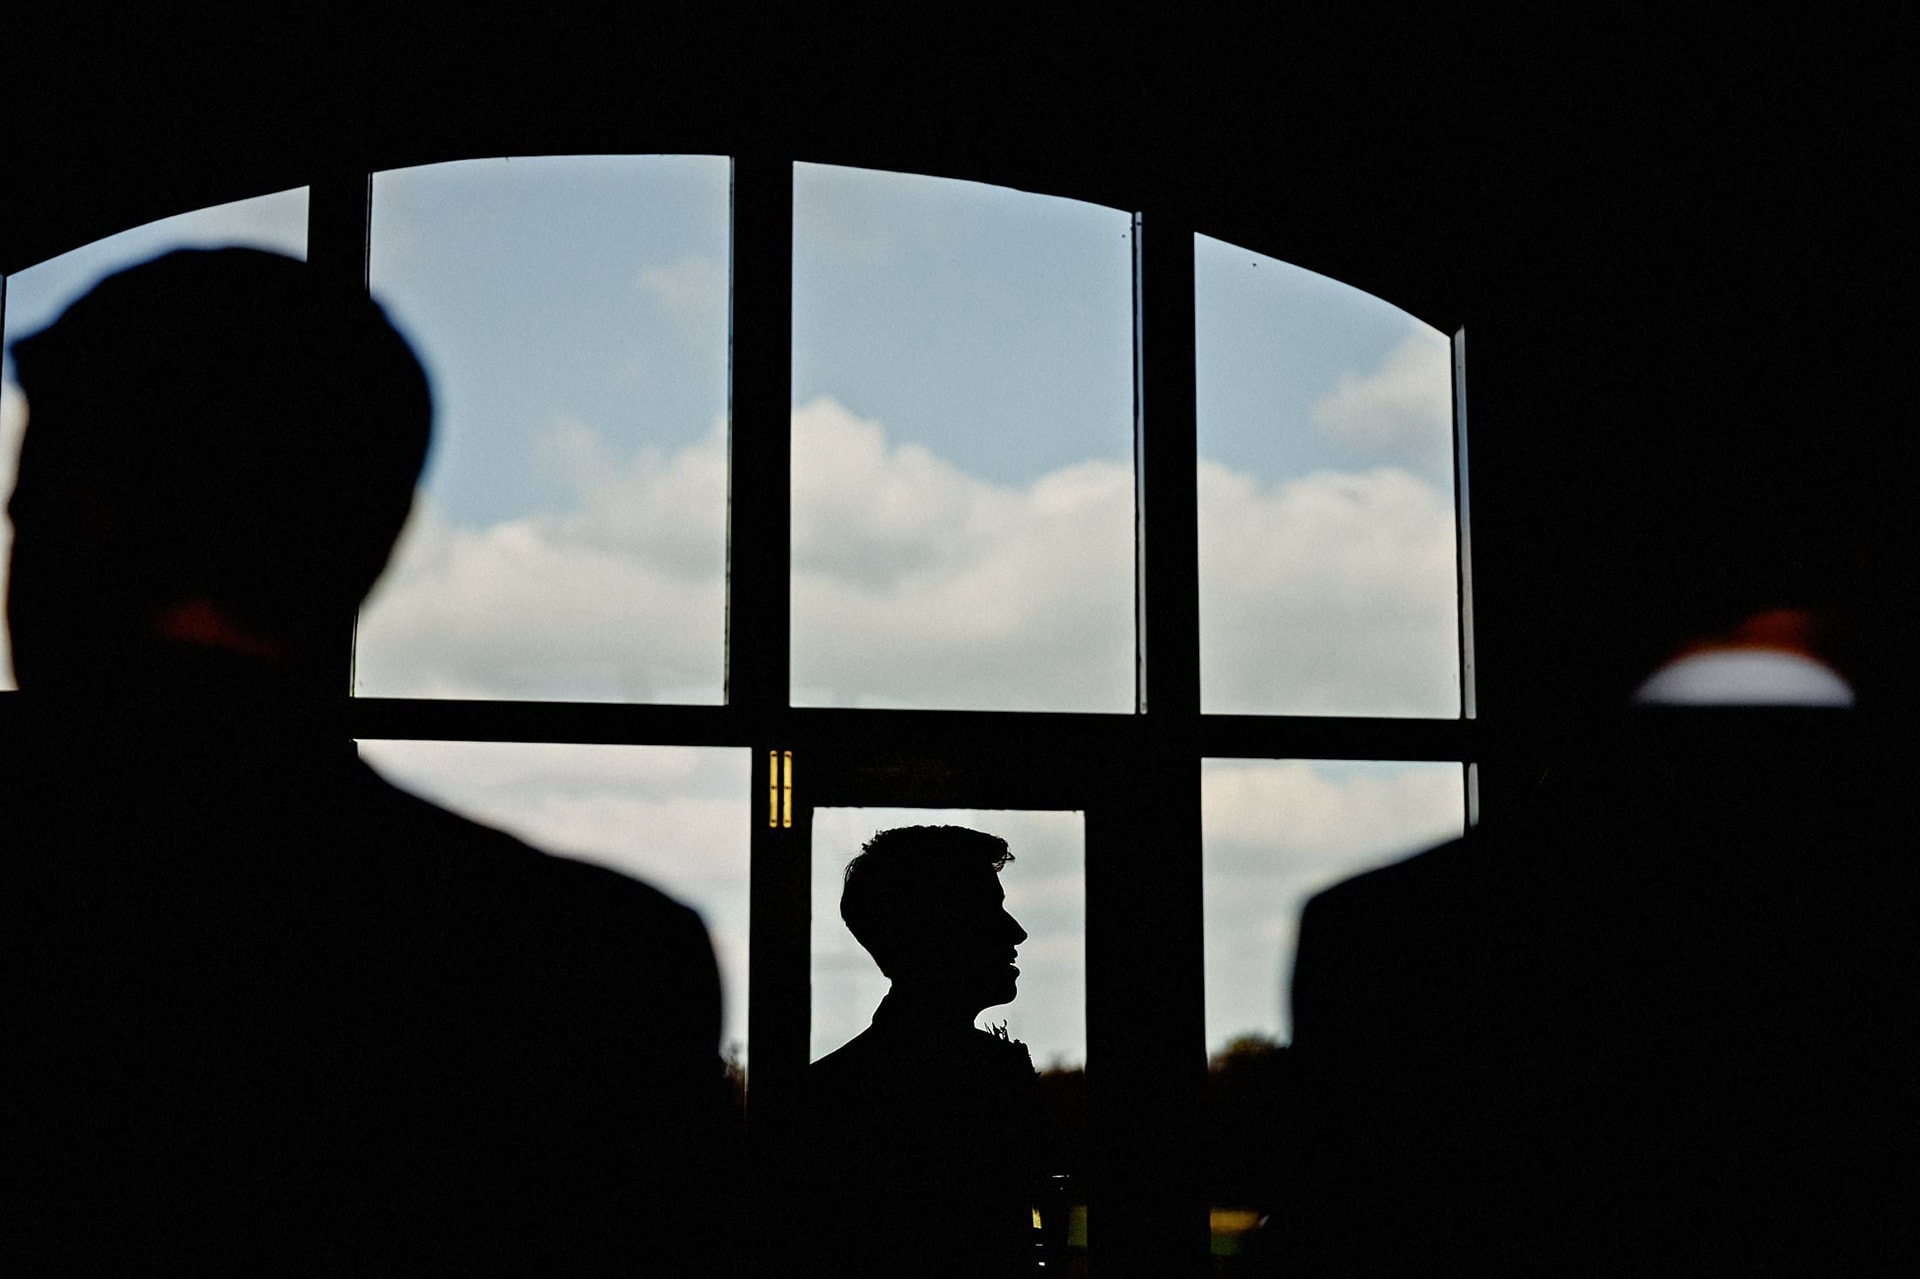 silhouette to show the groom